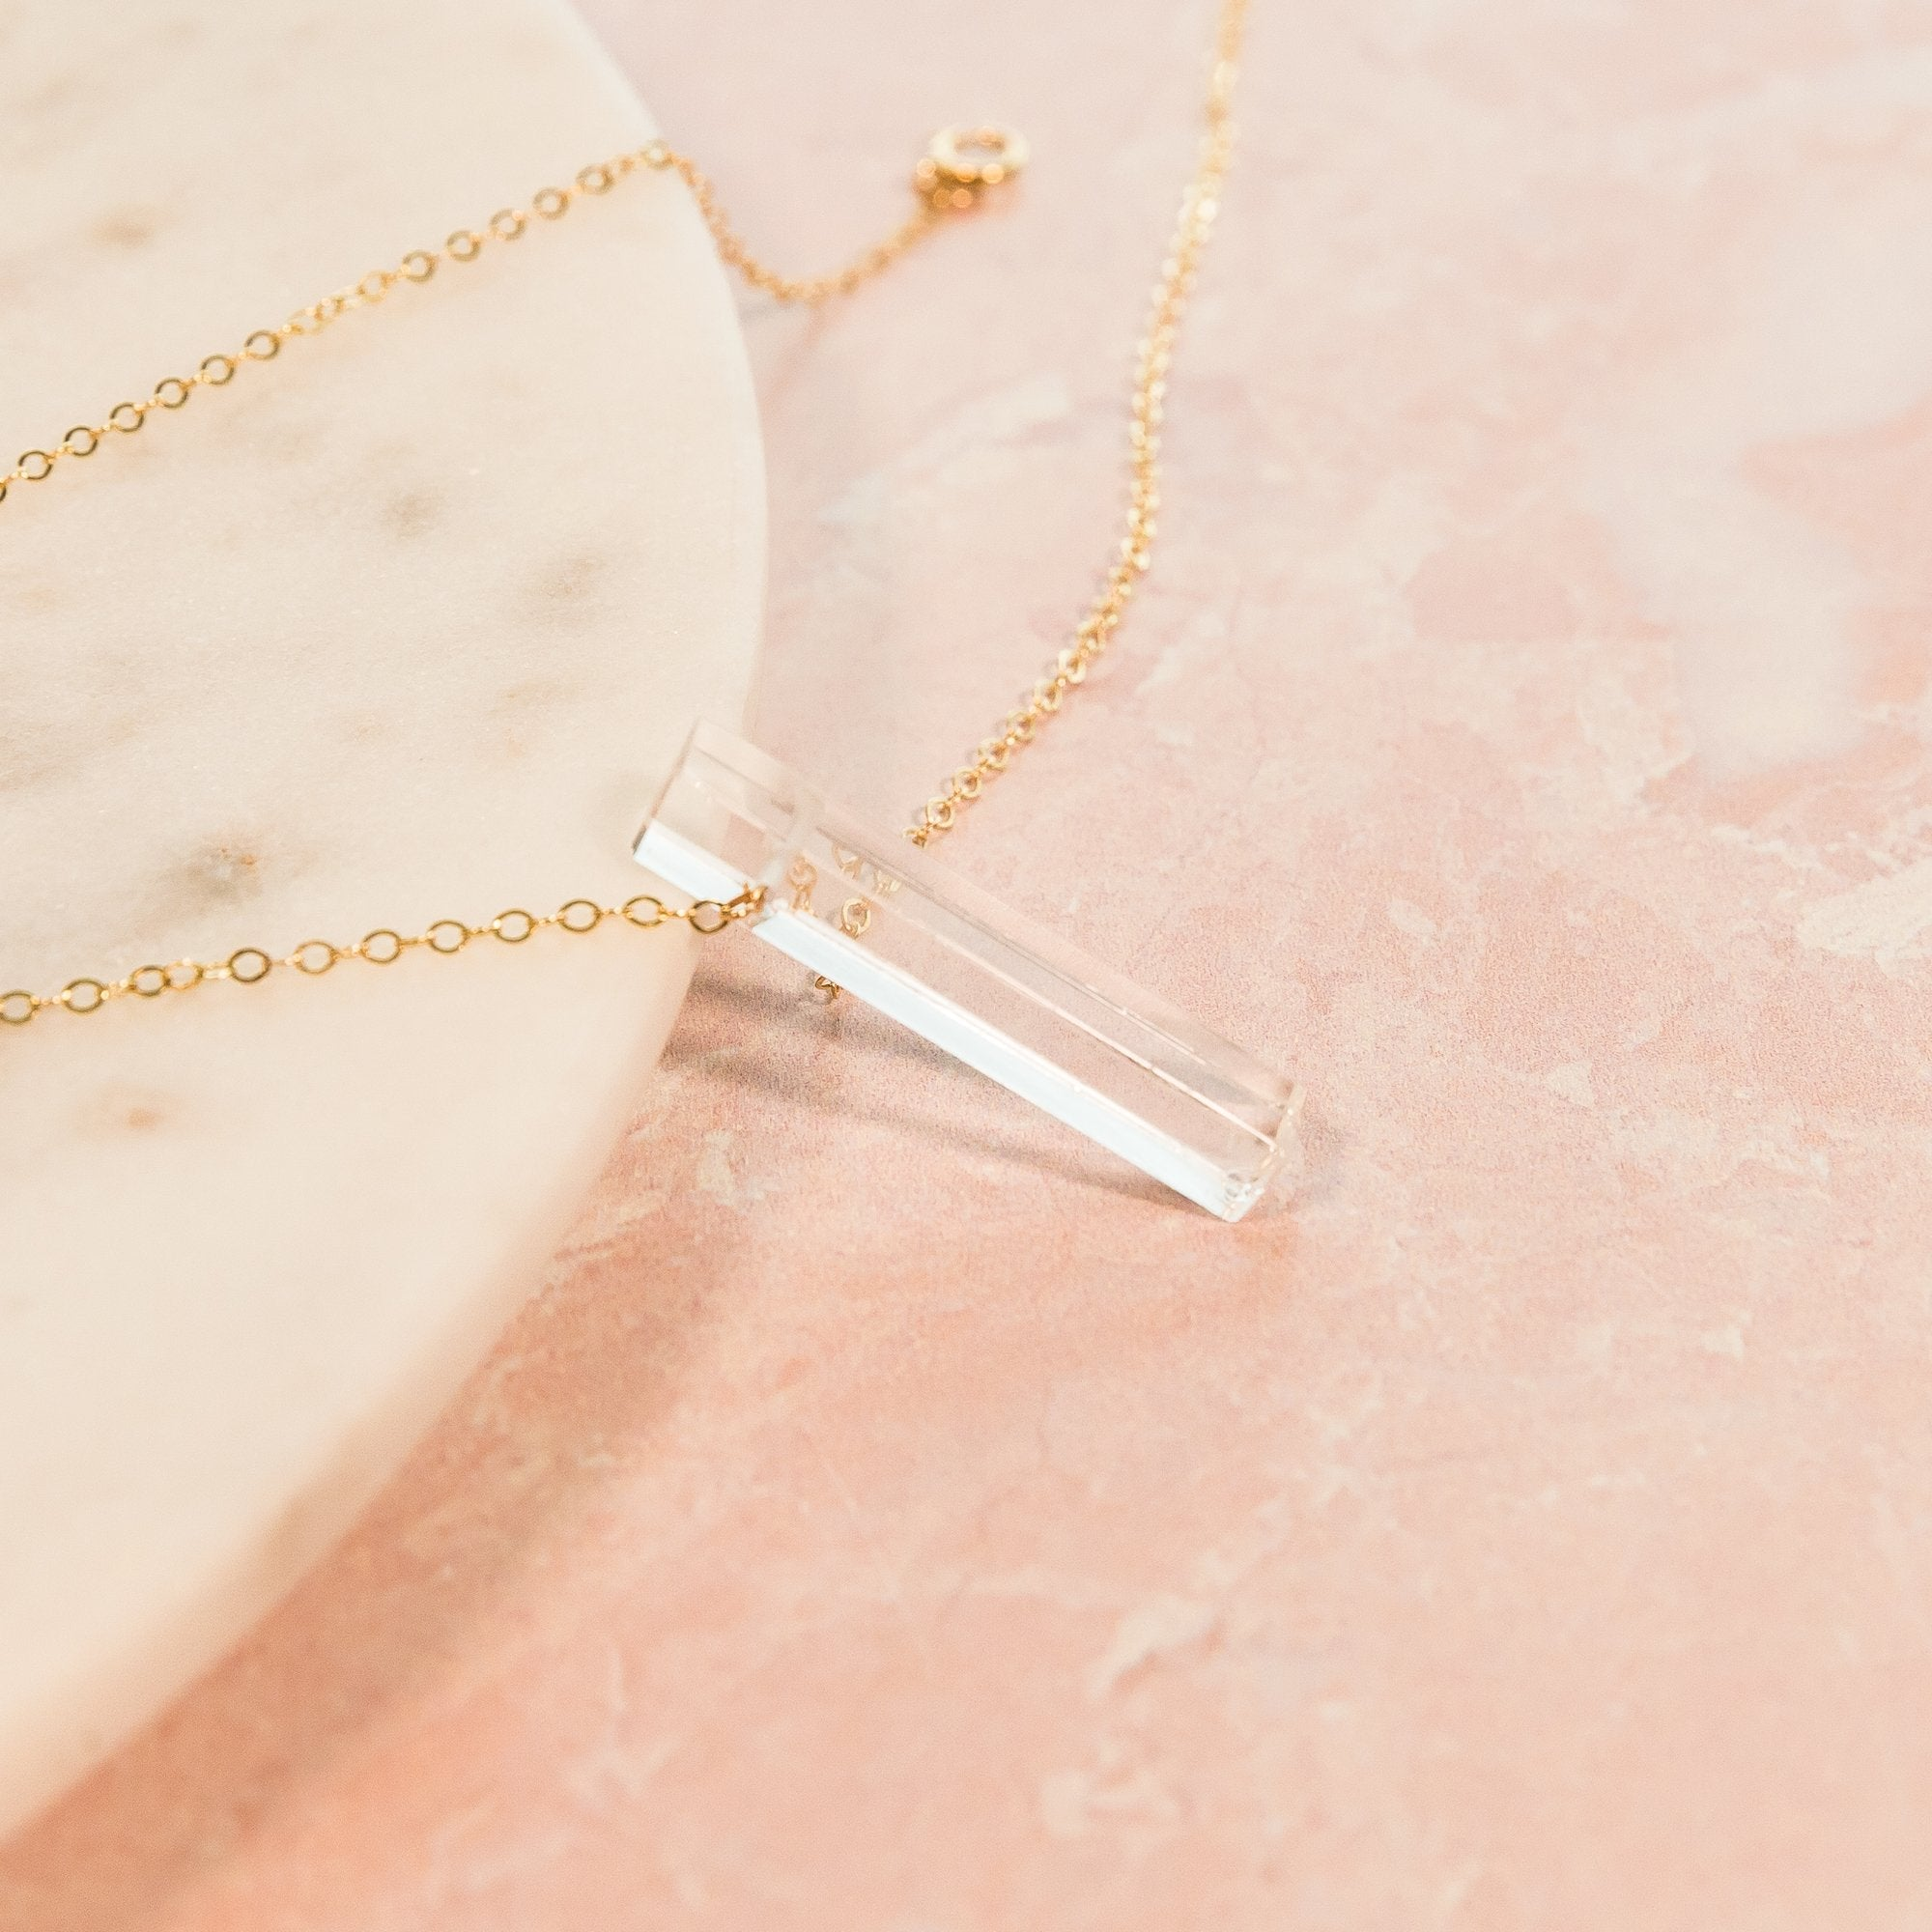 Clear Quartz Vertical Bar Necklace | Liz.Beth Jewelry Co.